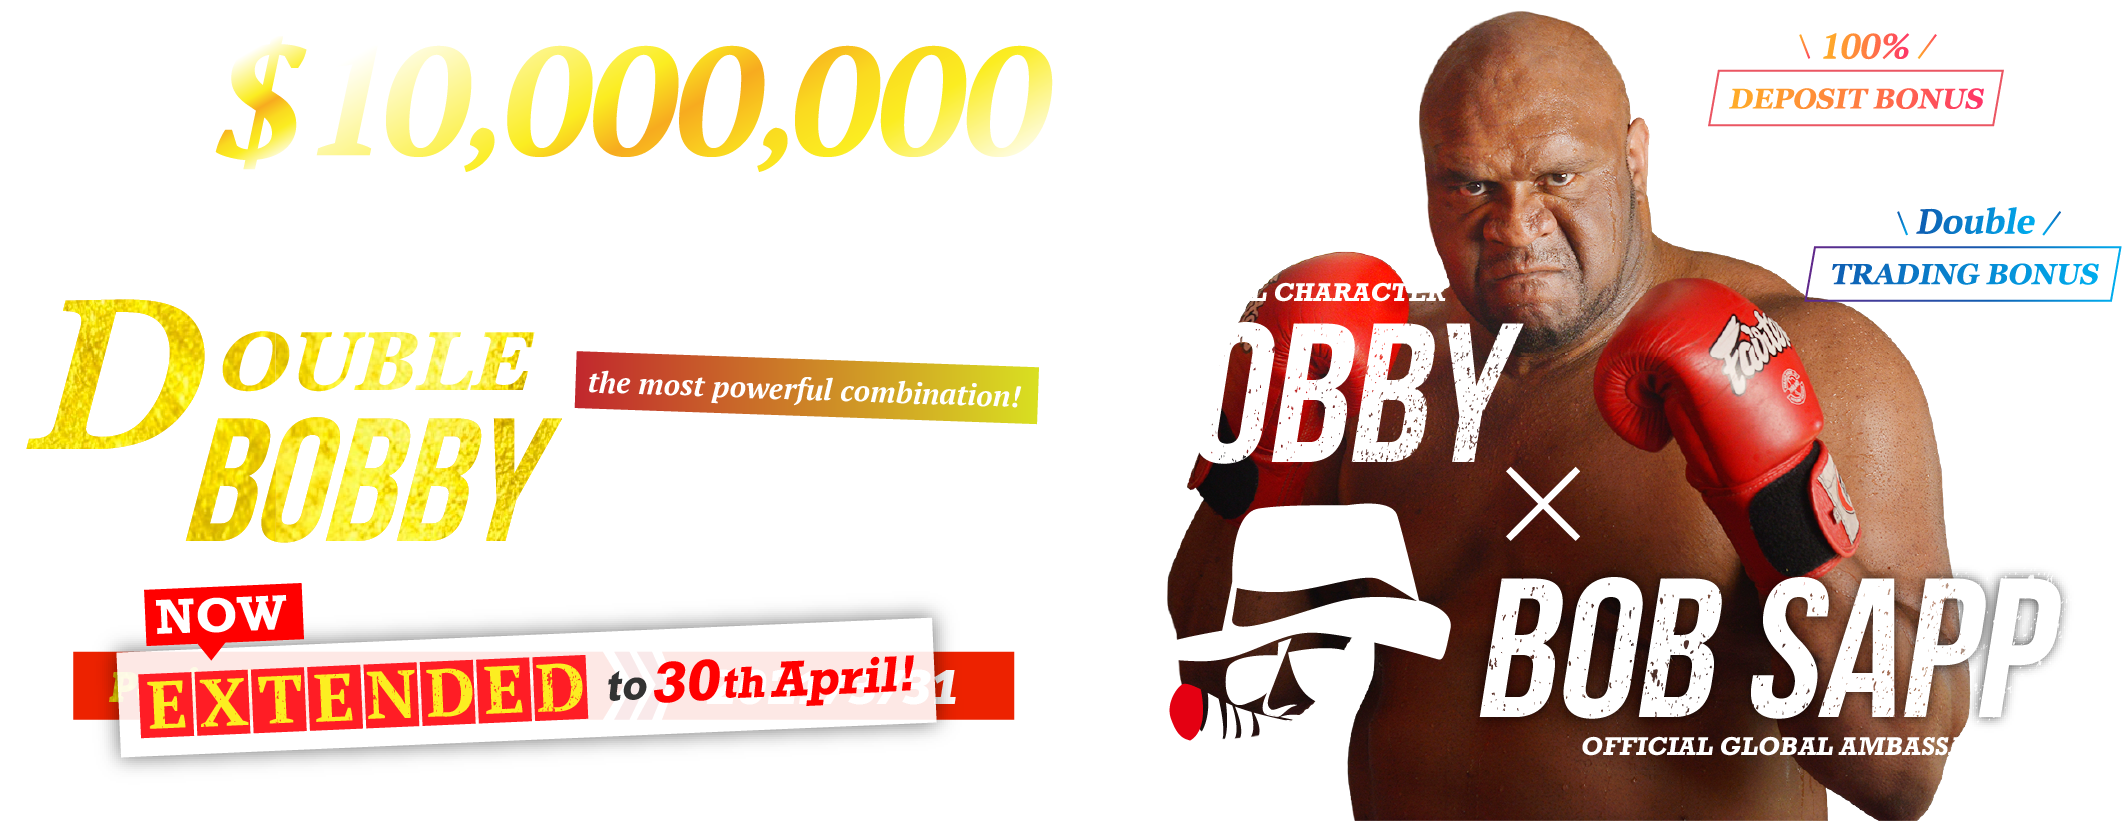 Total $10,000,000 to Giveaway Double BOBBY Campaign Now Extended to 30th April!!